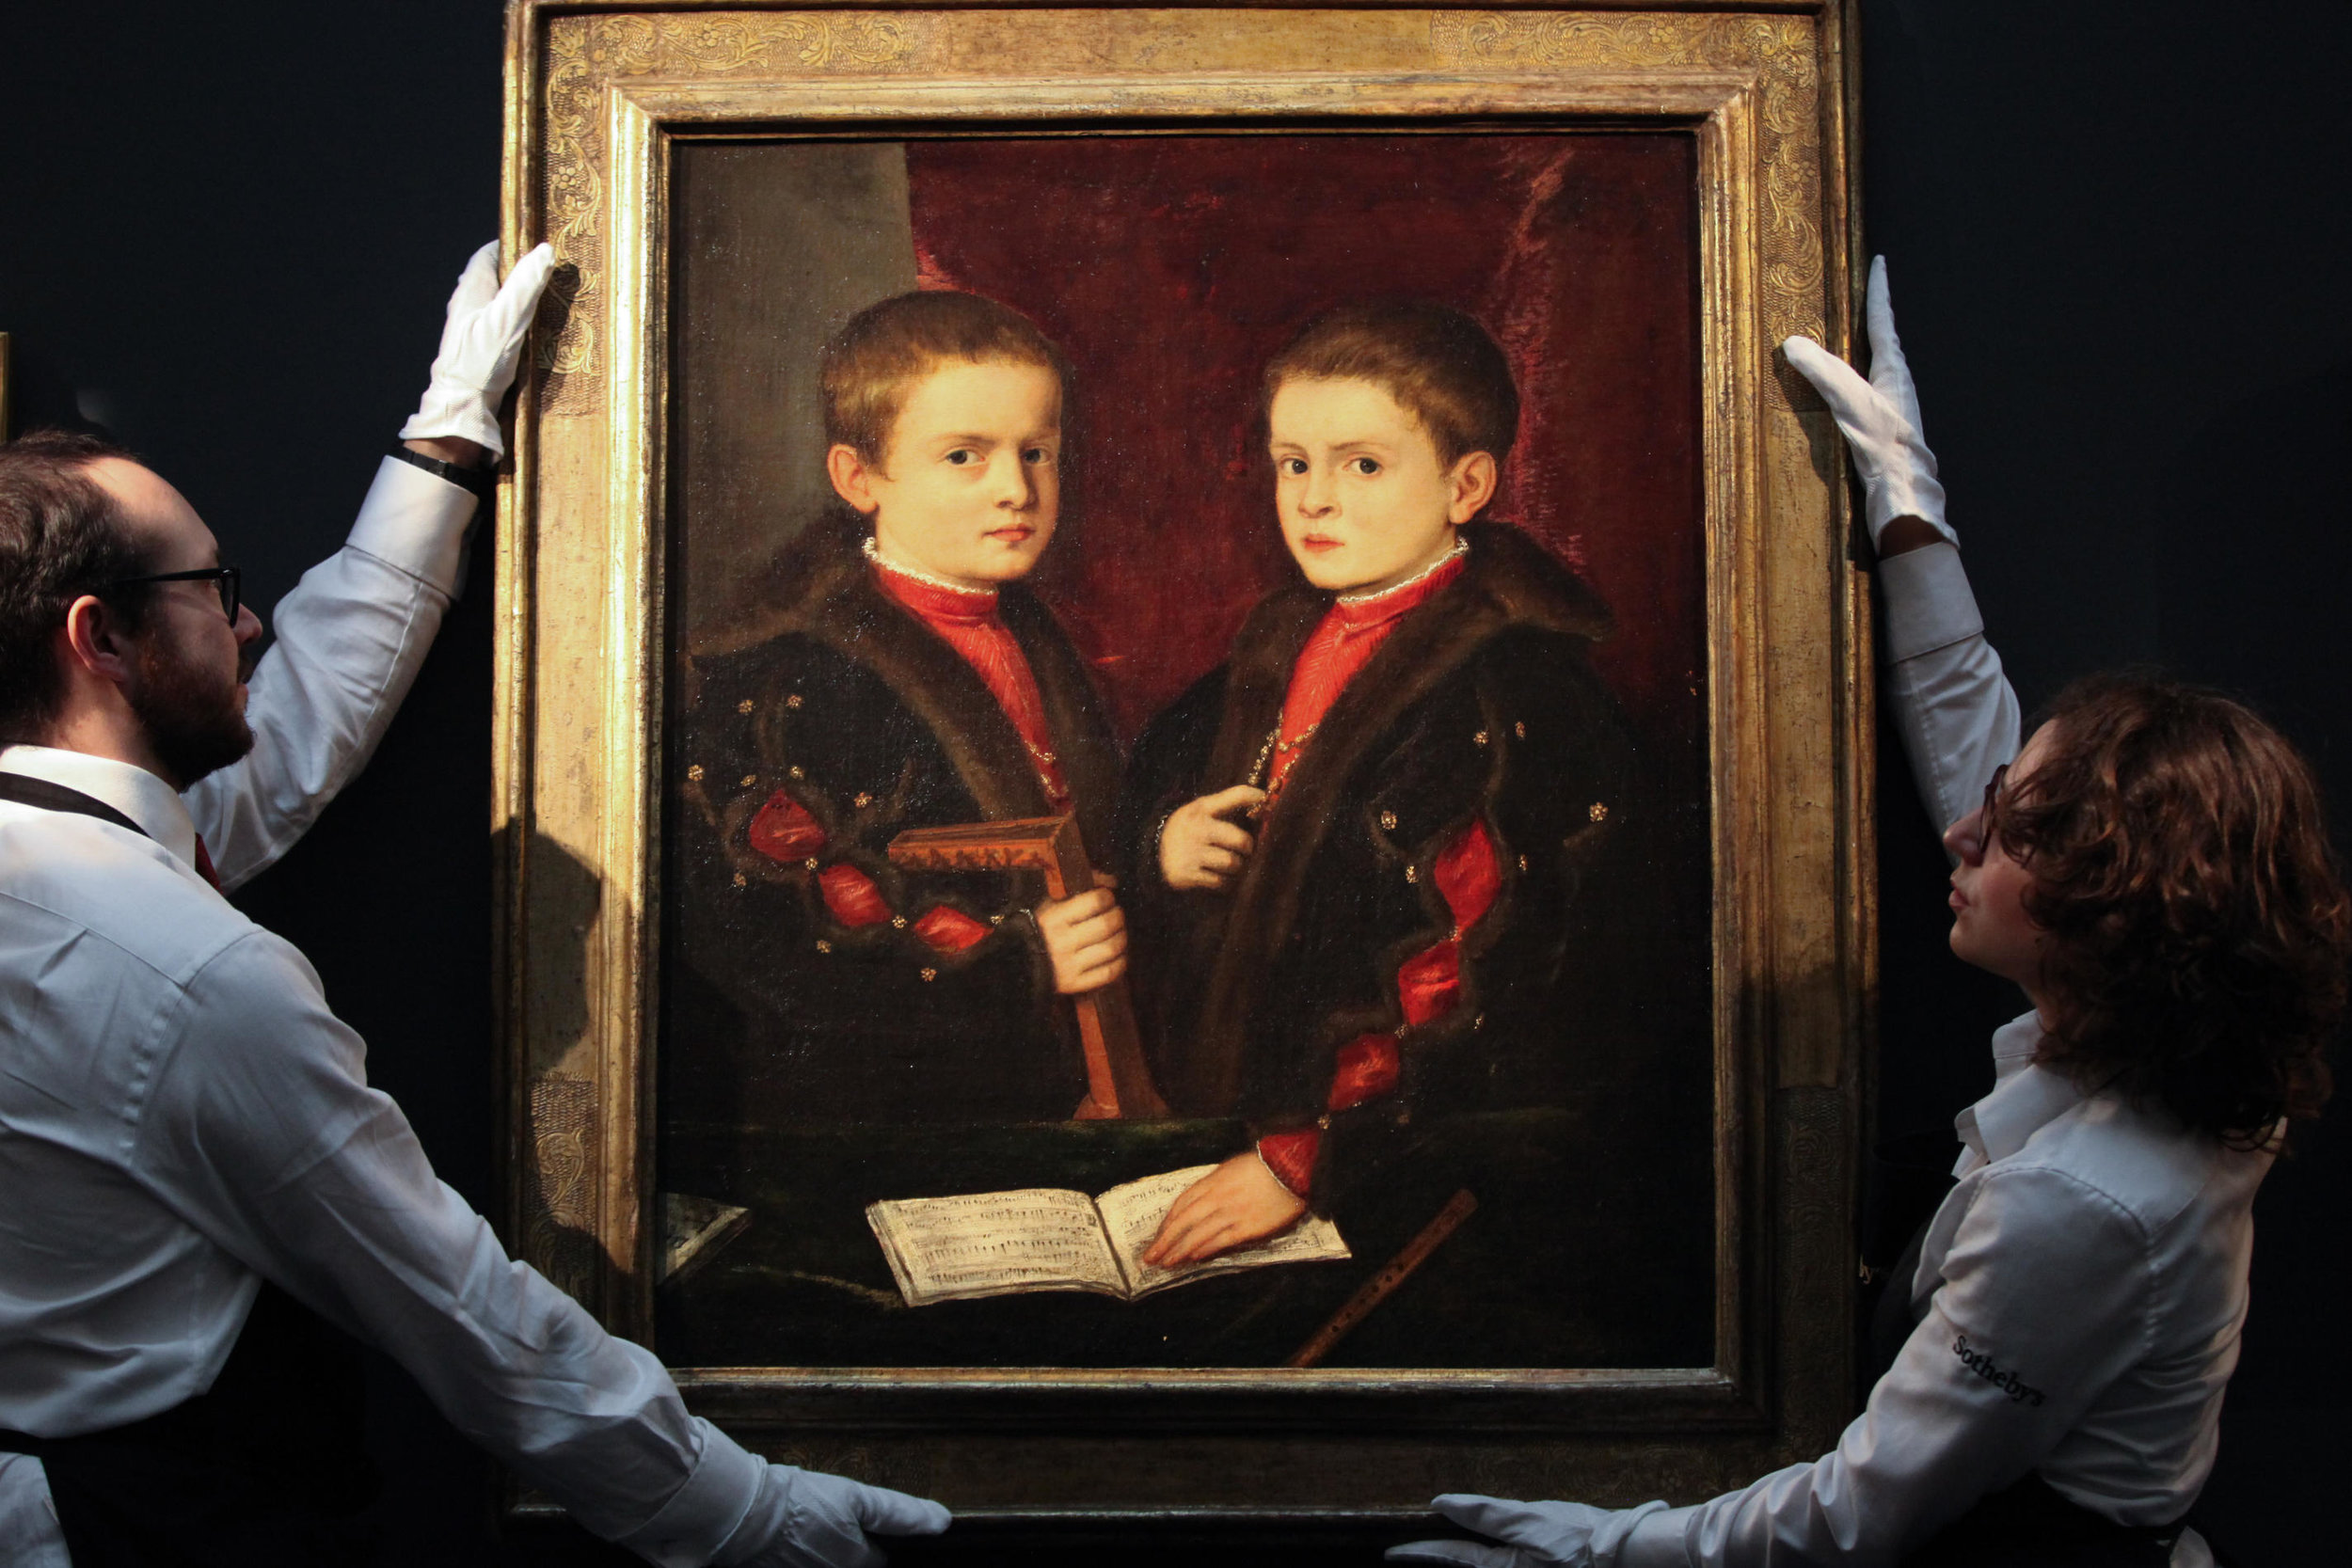 A member of staff views A Mesmerising Portrait of Two Boys, said to be Members of the Pesaro Family est, £1- £1.5 million, by Titian 1485_90-1576 .jpg